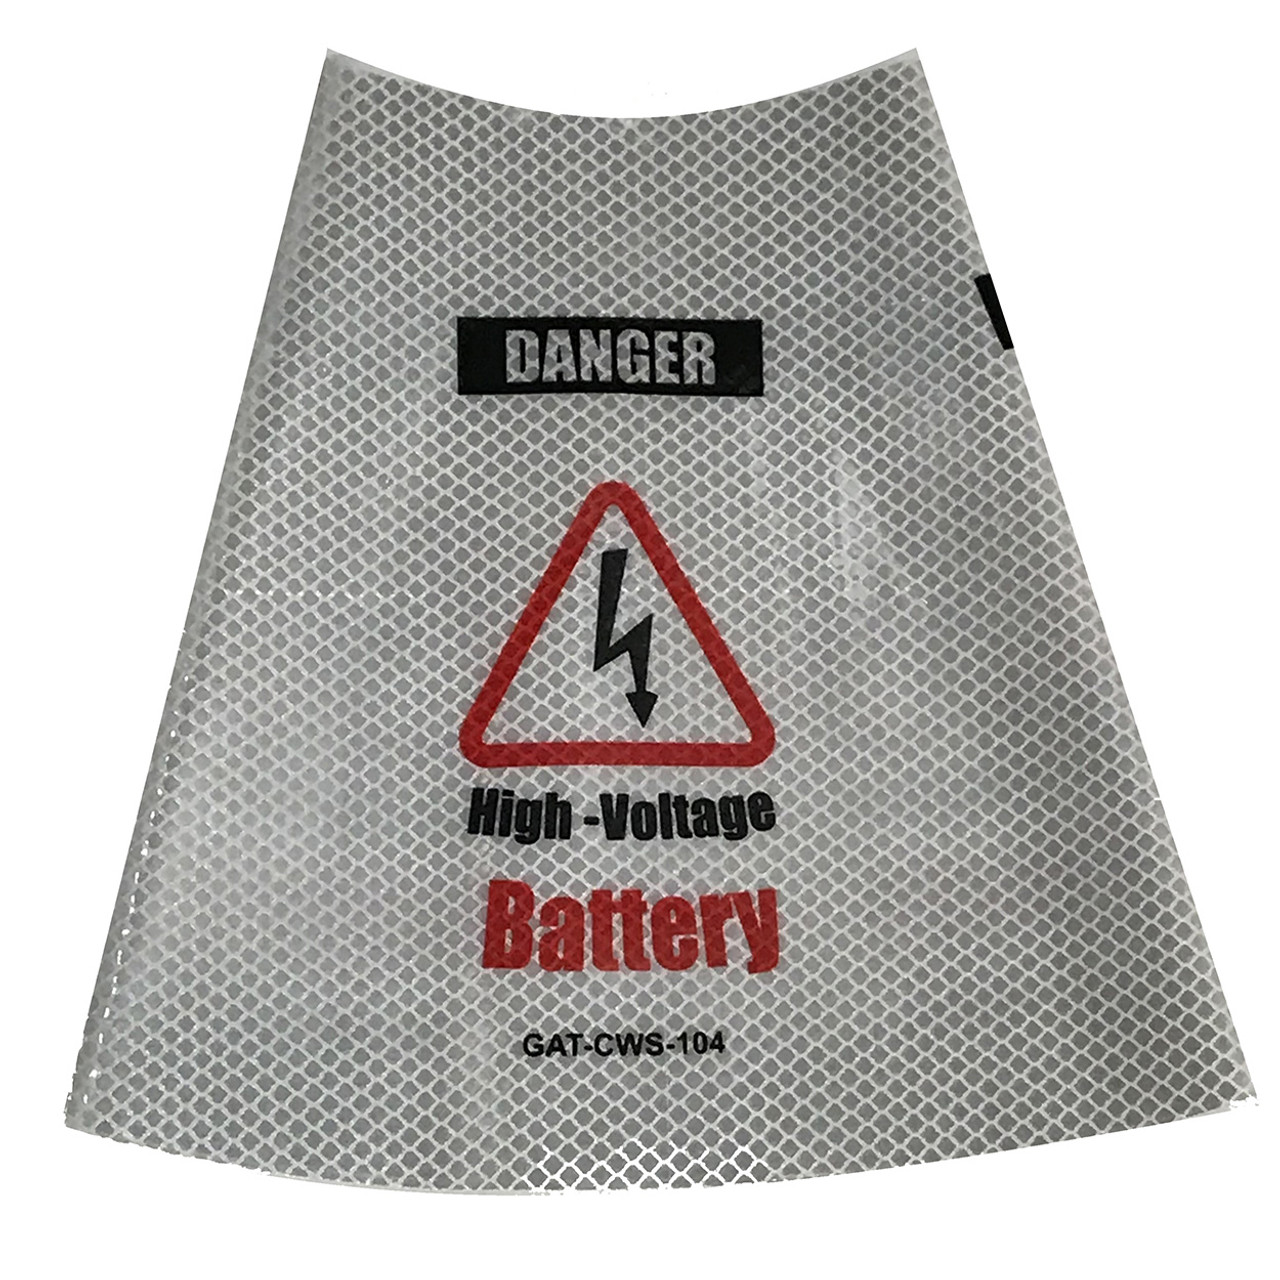 Electric Vehicle High Voltage Battery Sign - Cone Collar-6